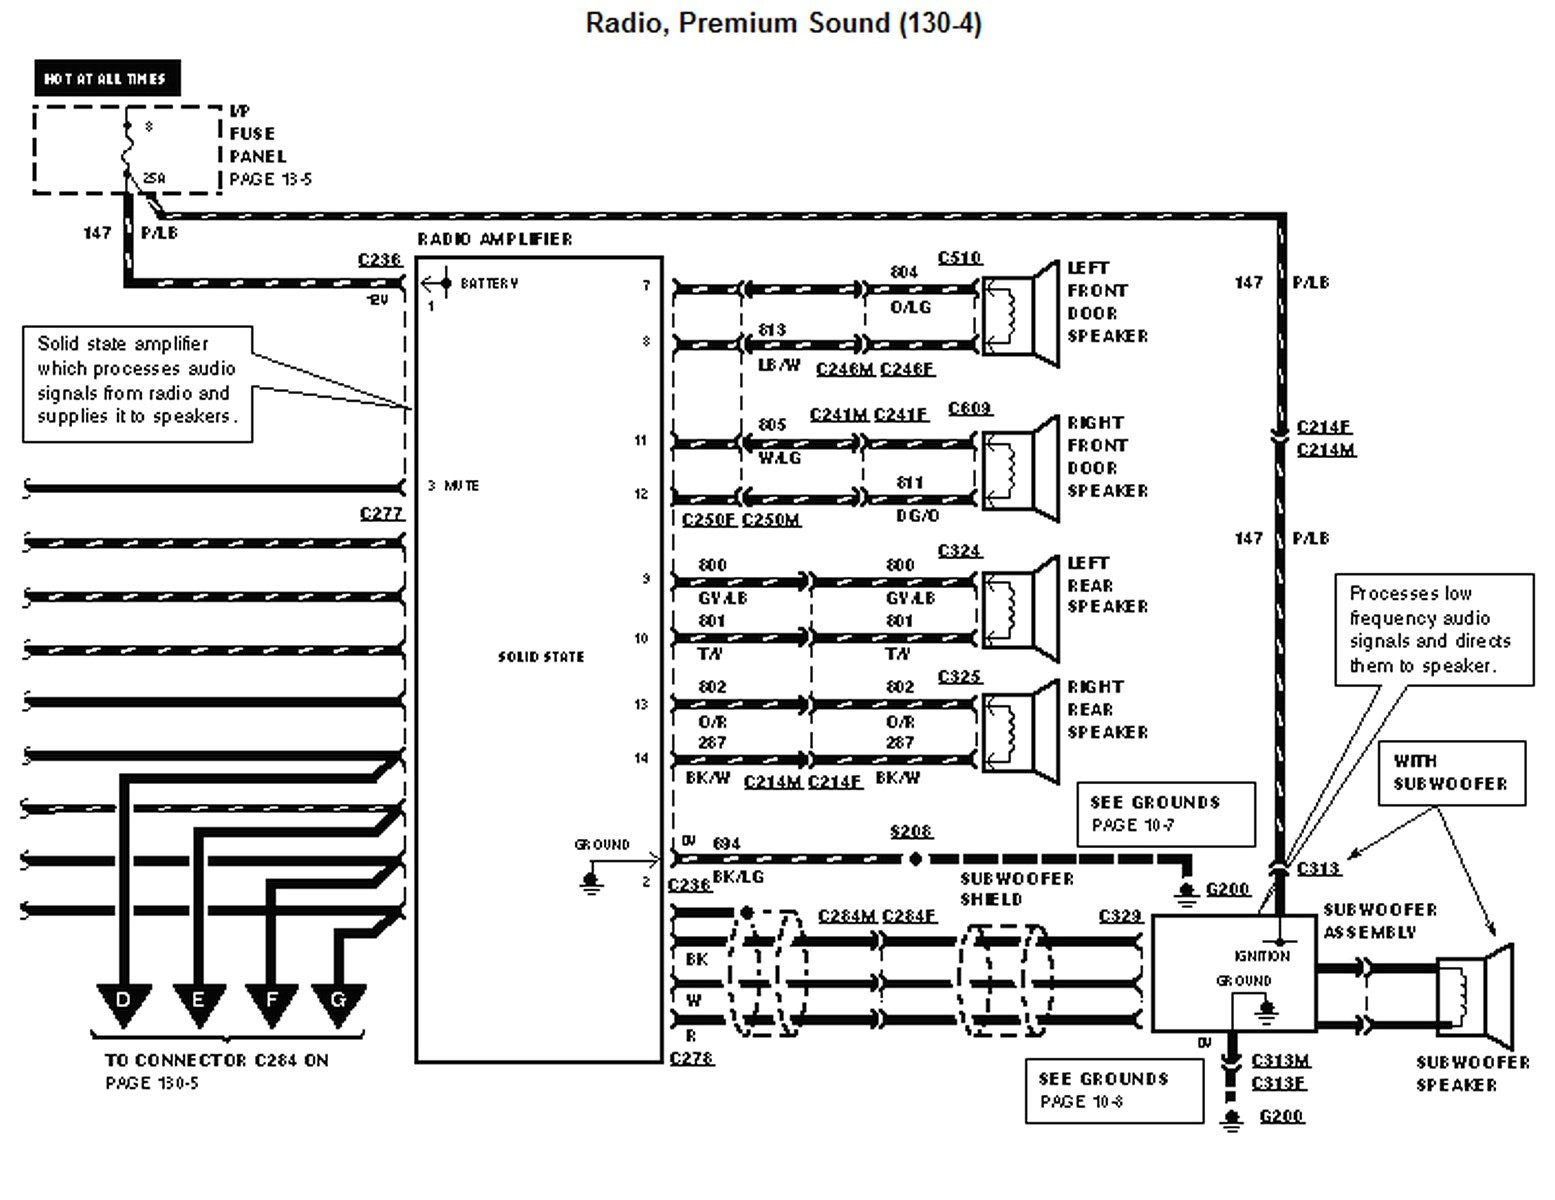 1968 Ford F 250 Radio Wiring Diagram 2003 Chevy Monte Carlo Stereo Wiring Diagram Cheerokee Bmw In E46 Jeanjaures37 Fr